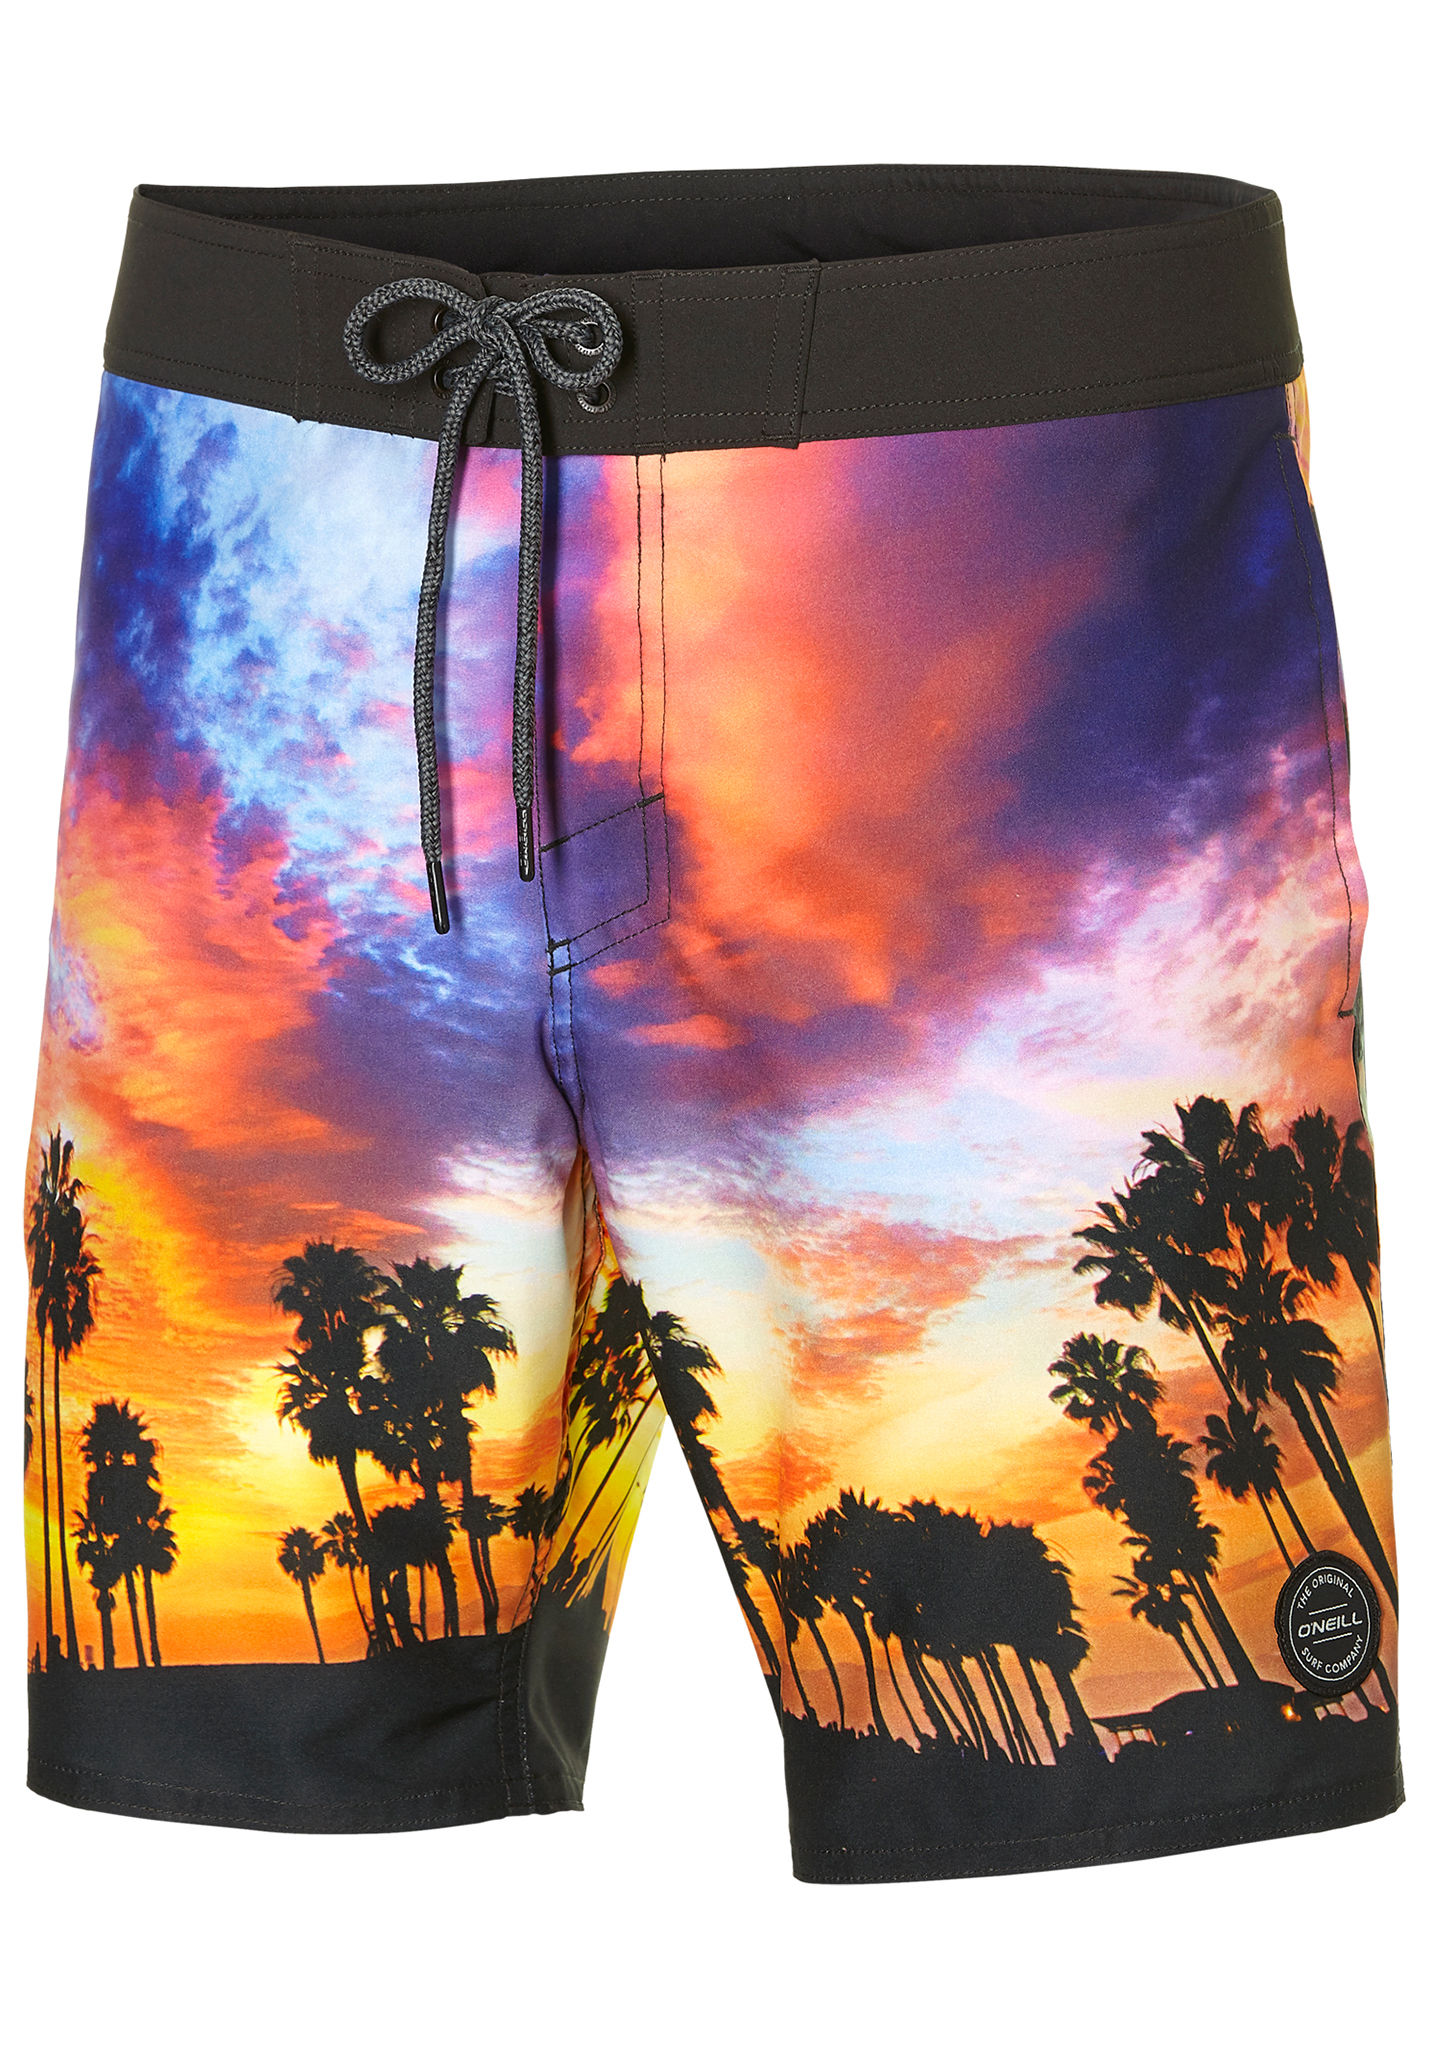 797de26ab4b O'Neill Mid Freak Photo - Boardshorts for Men - Red - Planet Sports